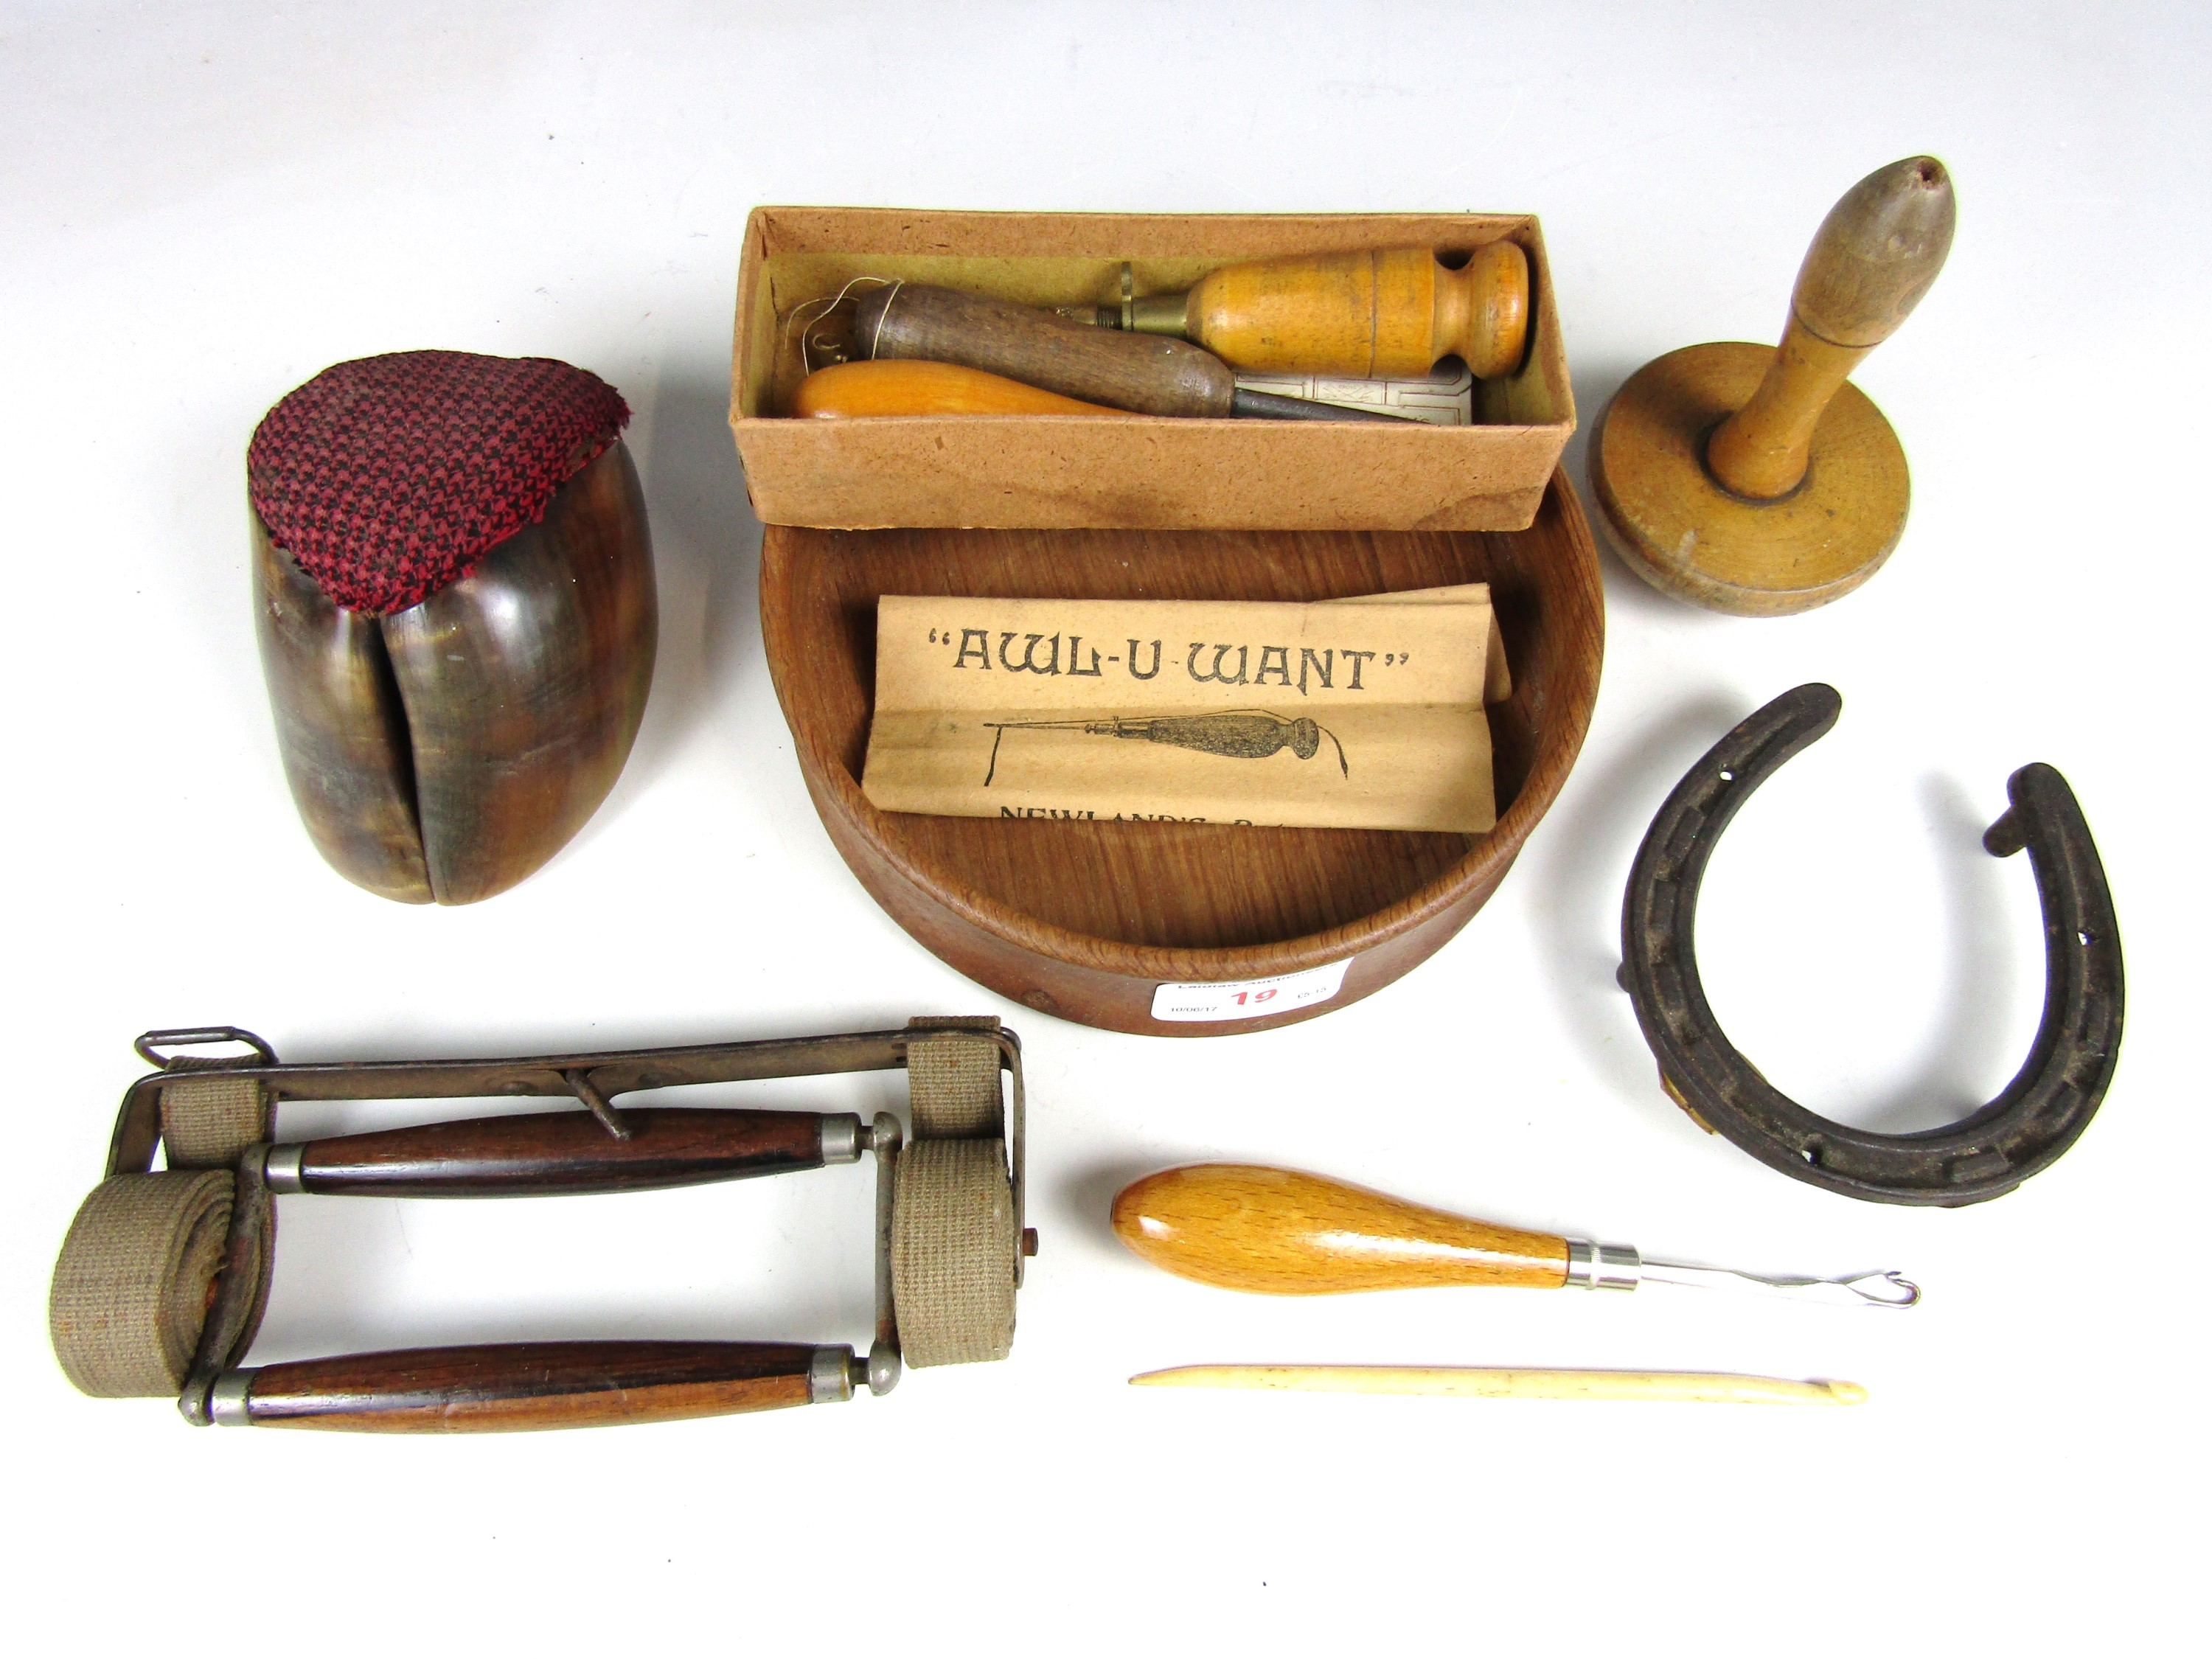 Lot 19 - Sundry collectors' items including darning and sewing tools, a rosewood handled luggage carrier